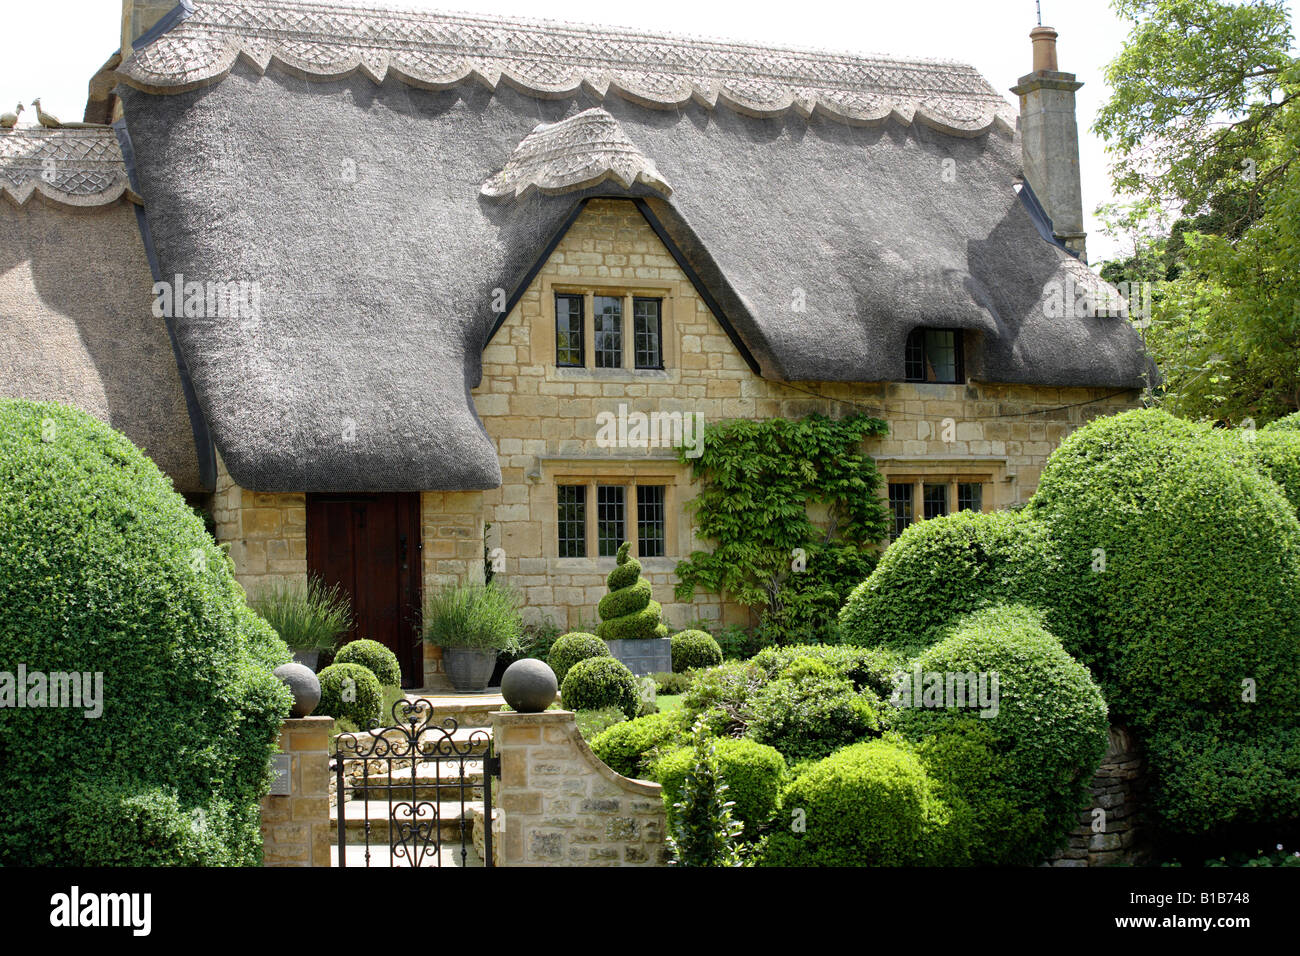 A Thatched Cottage In The Town Of Chipping Campden In